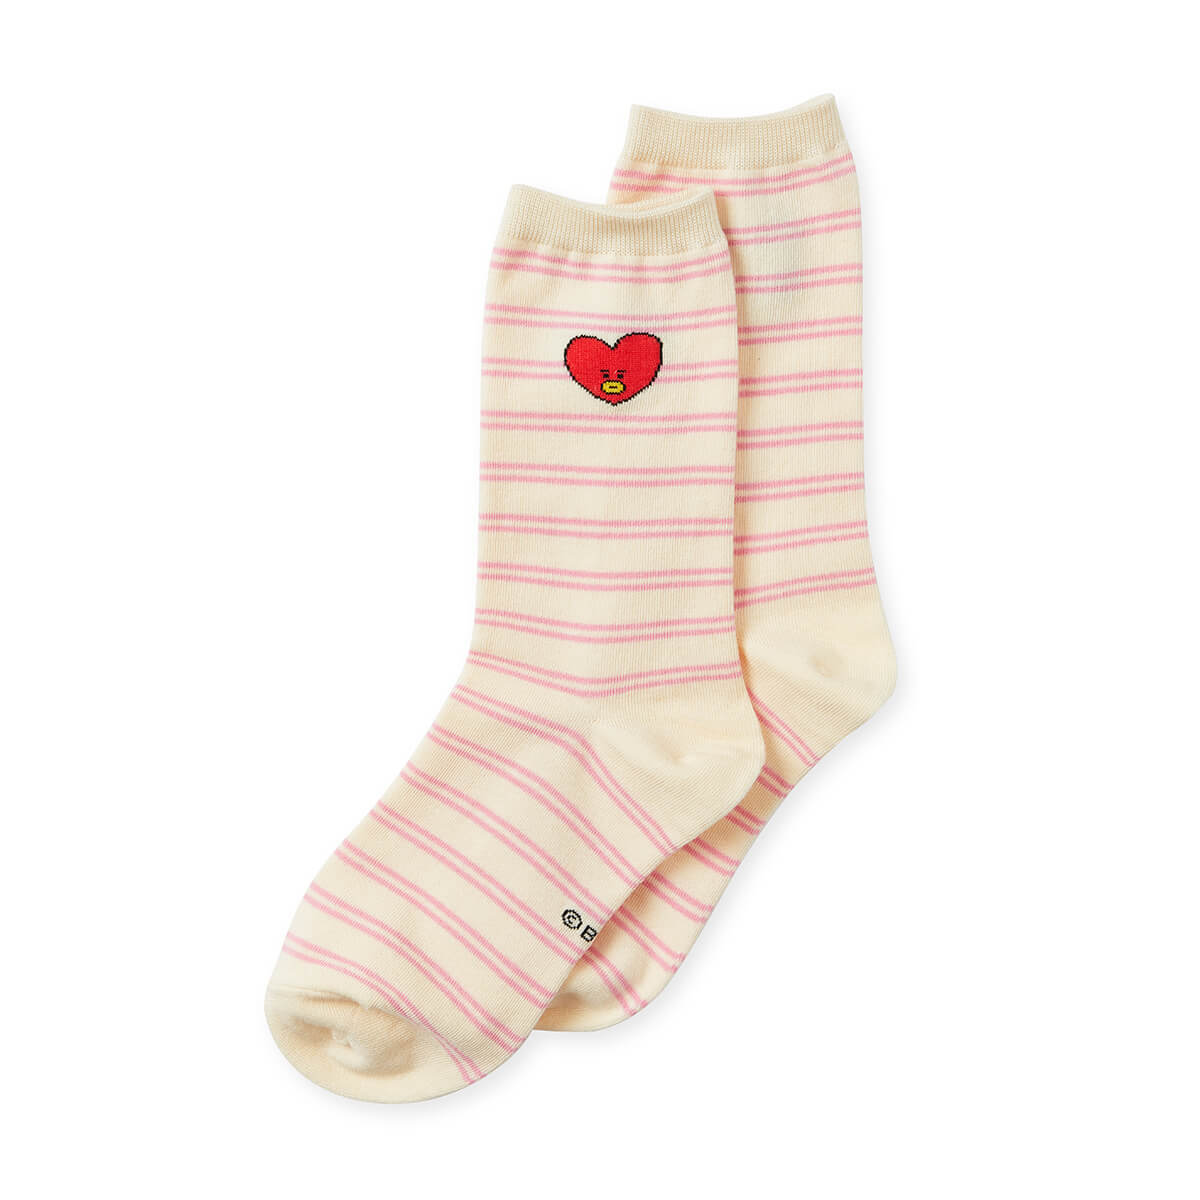 BT21 TATA Heart Socks